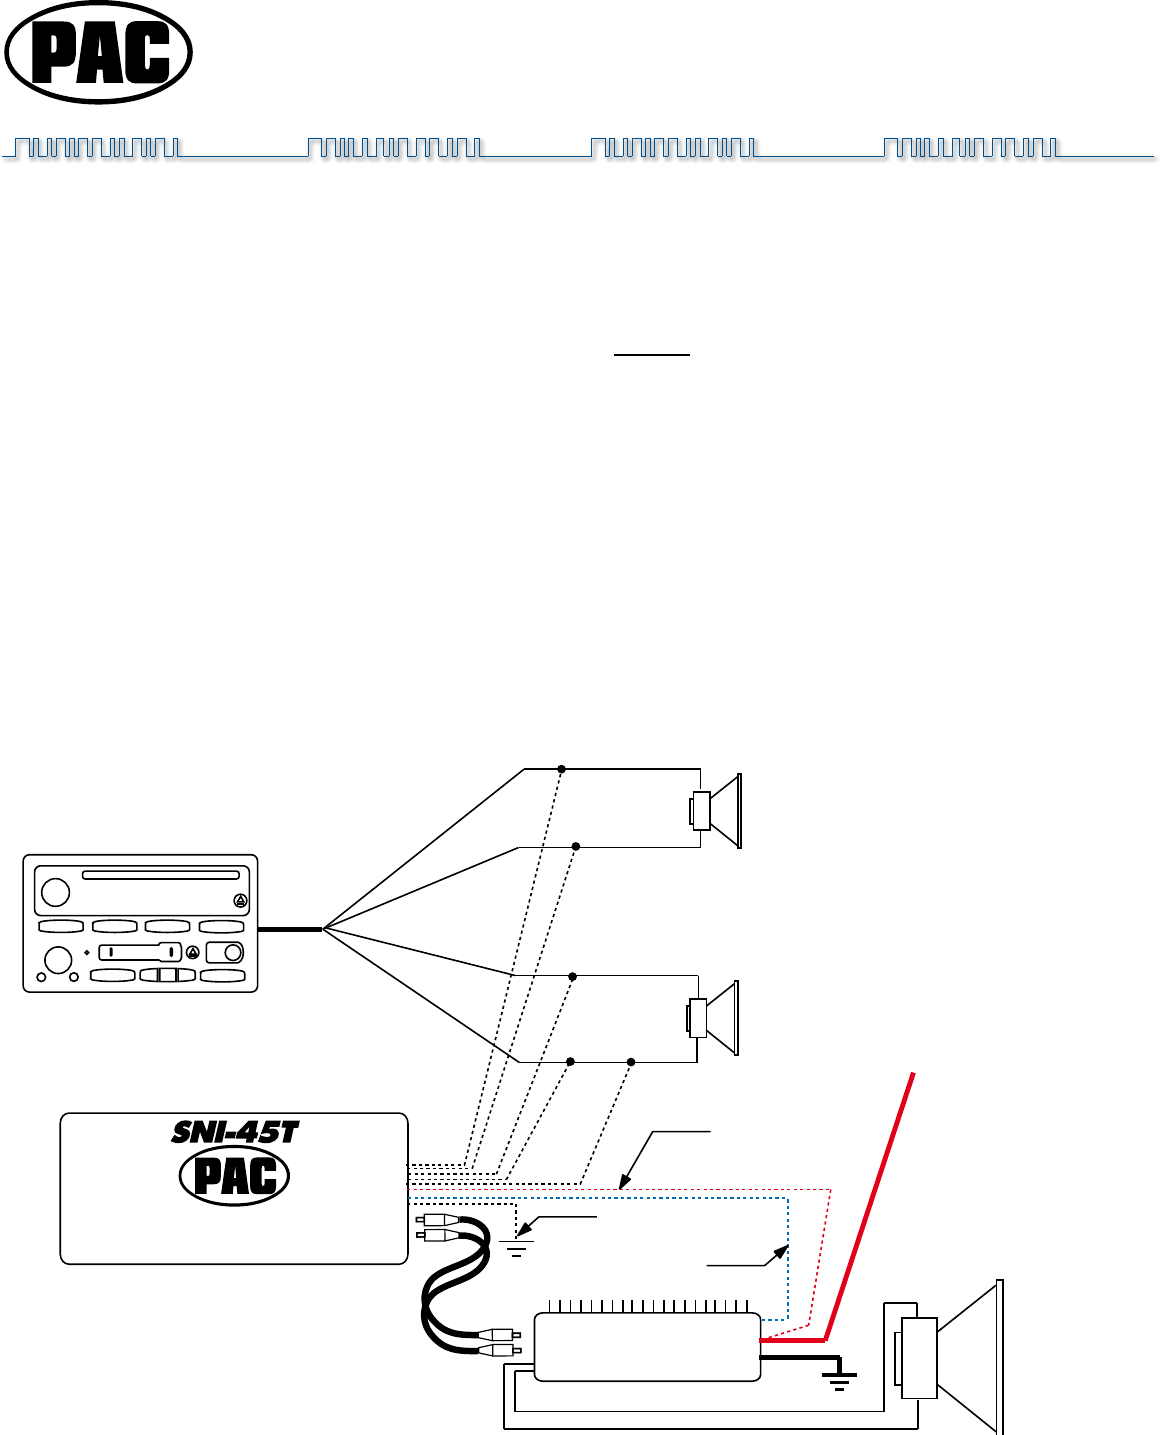 9af0138b a688 4aa9 81dc 95d4d80cea4a bg1 pac radio sni 45t user guide manualsonline com pac line out converter wiring diagram at honlapkeszites.co